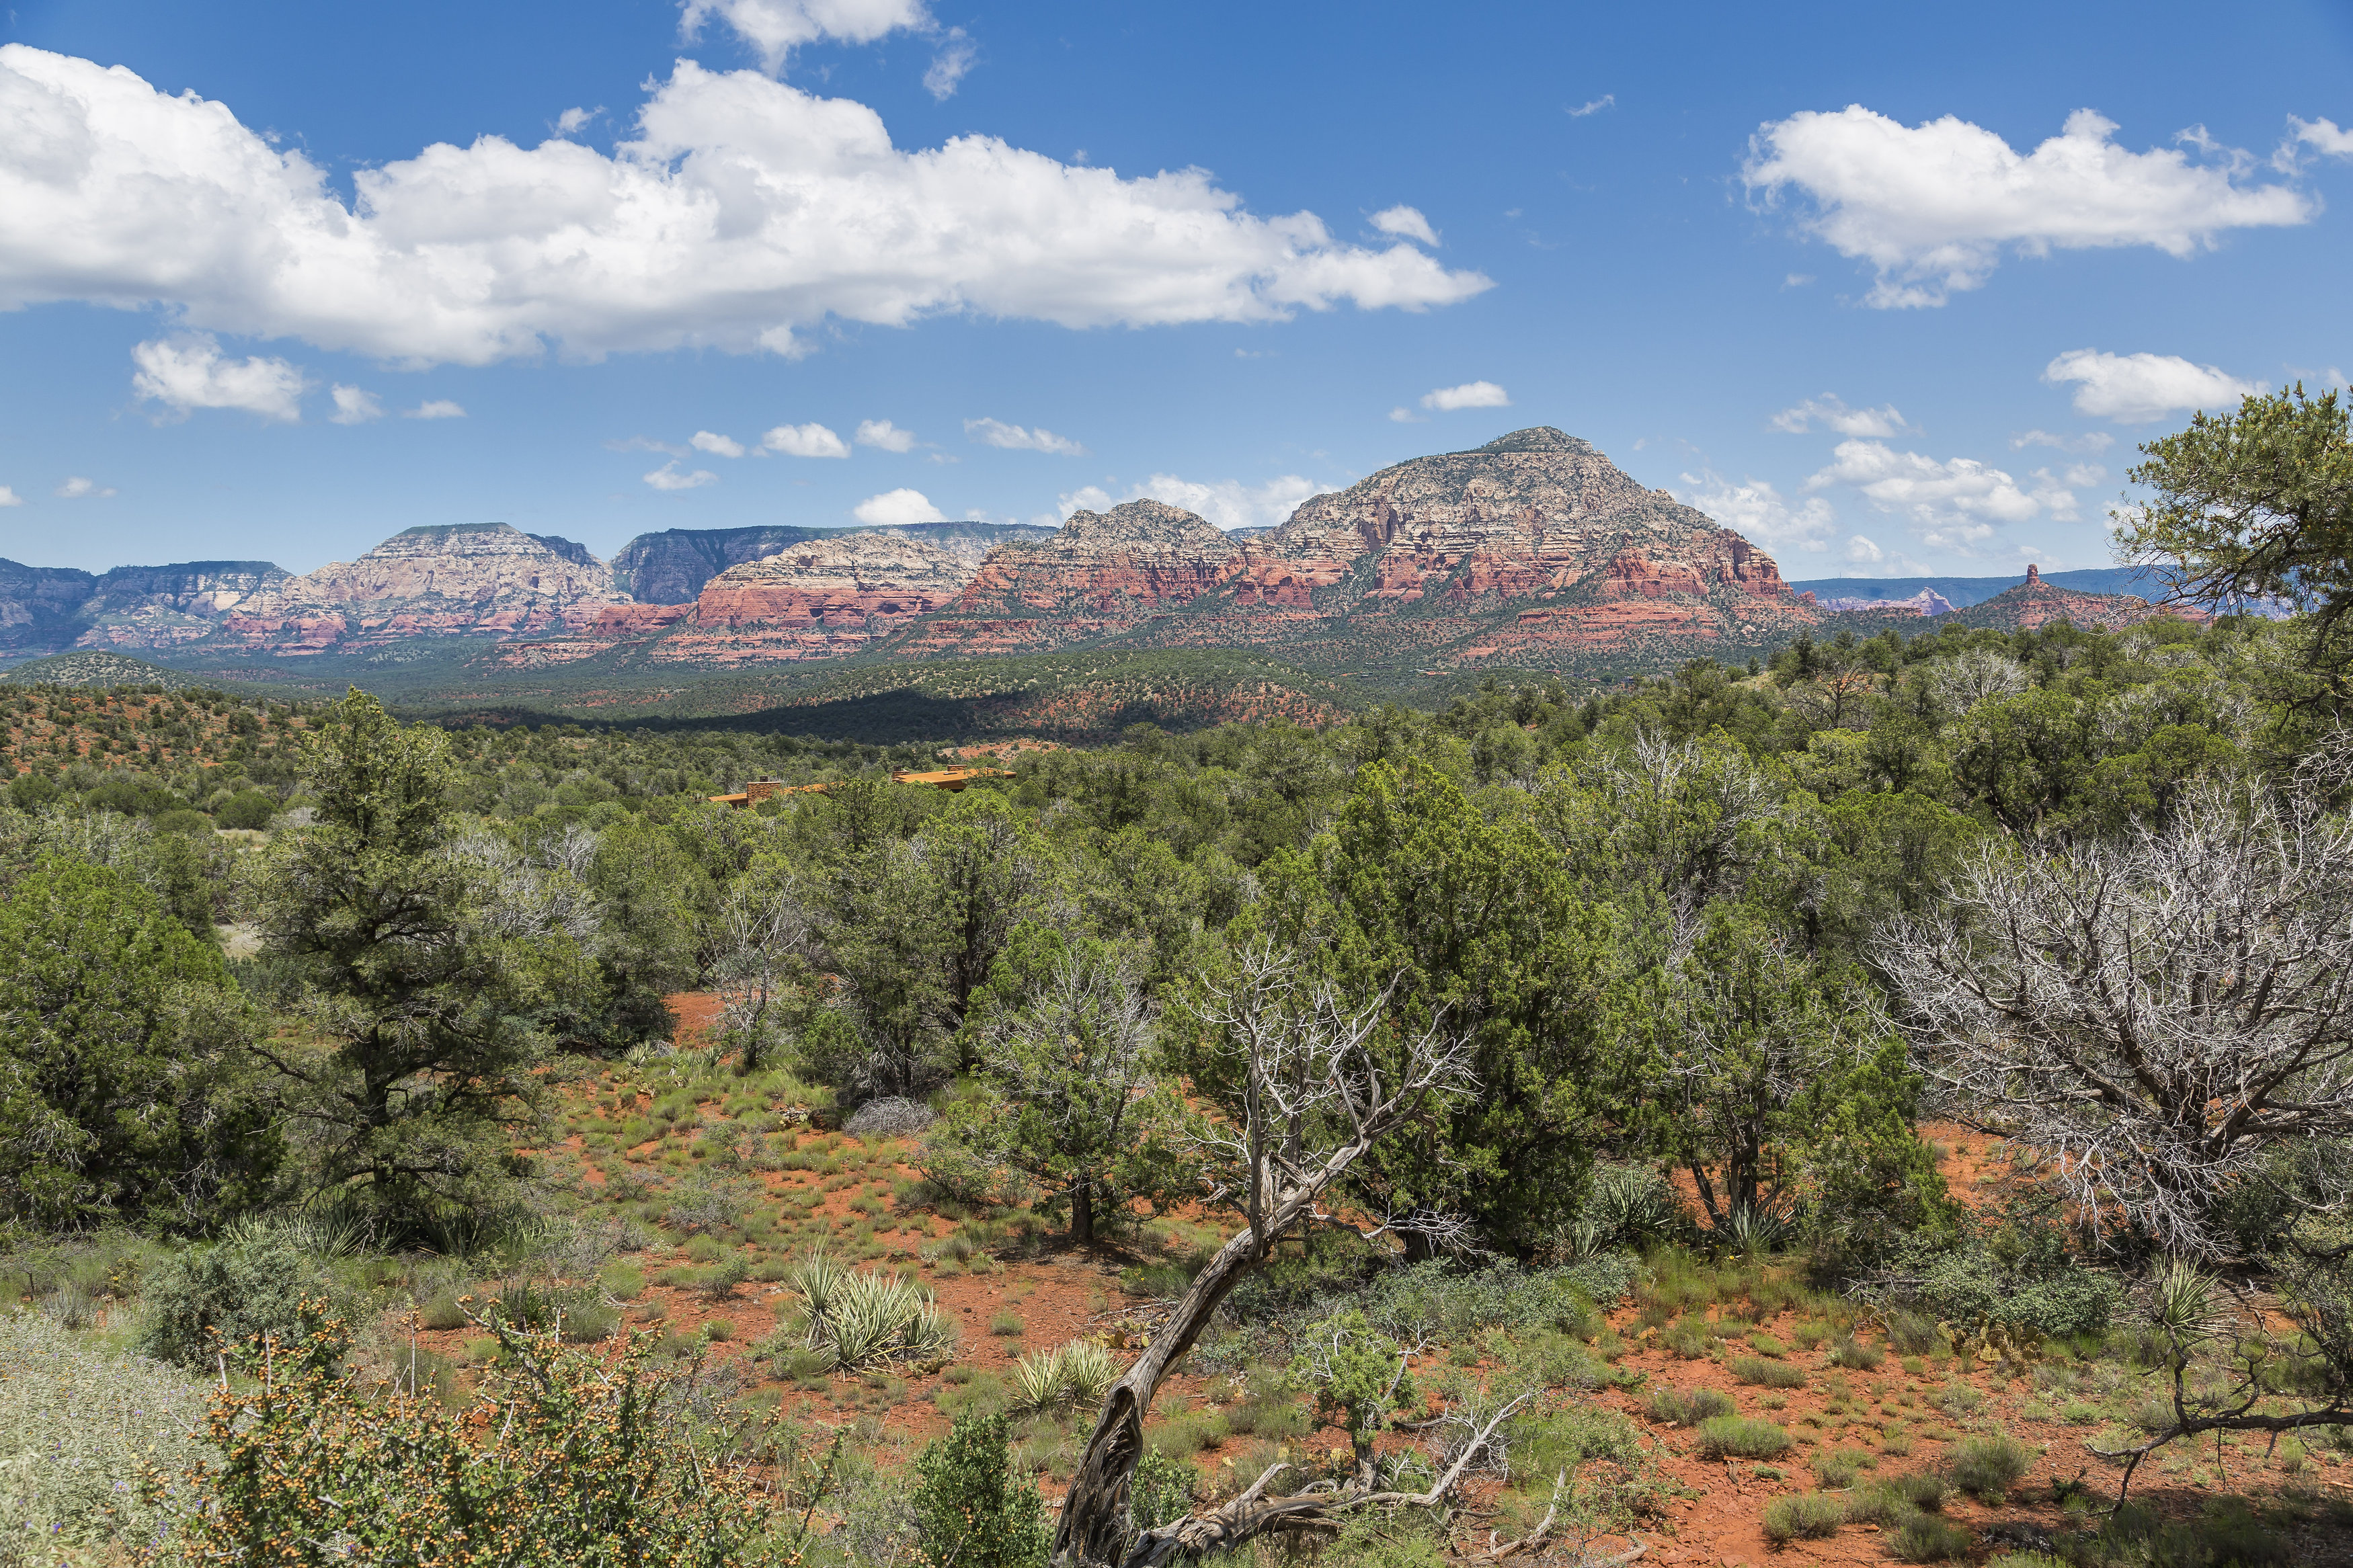 Land for Sale at Lot 19 Very private lot with expansive red rock views. 155 Altair AVE 19 Sedona, Arizona 86336 United States